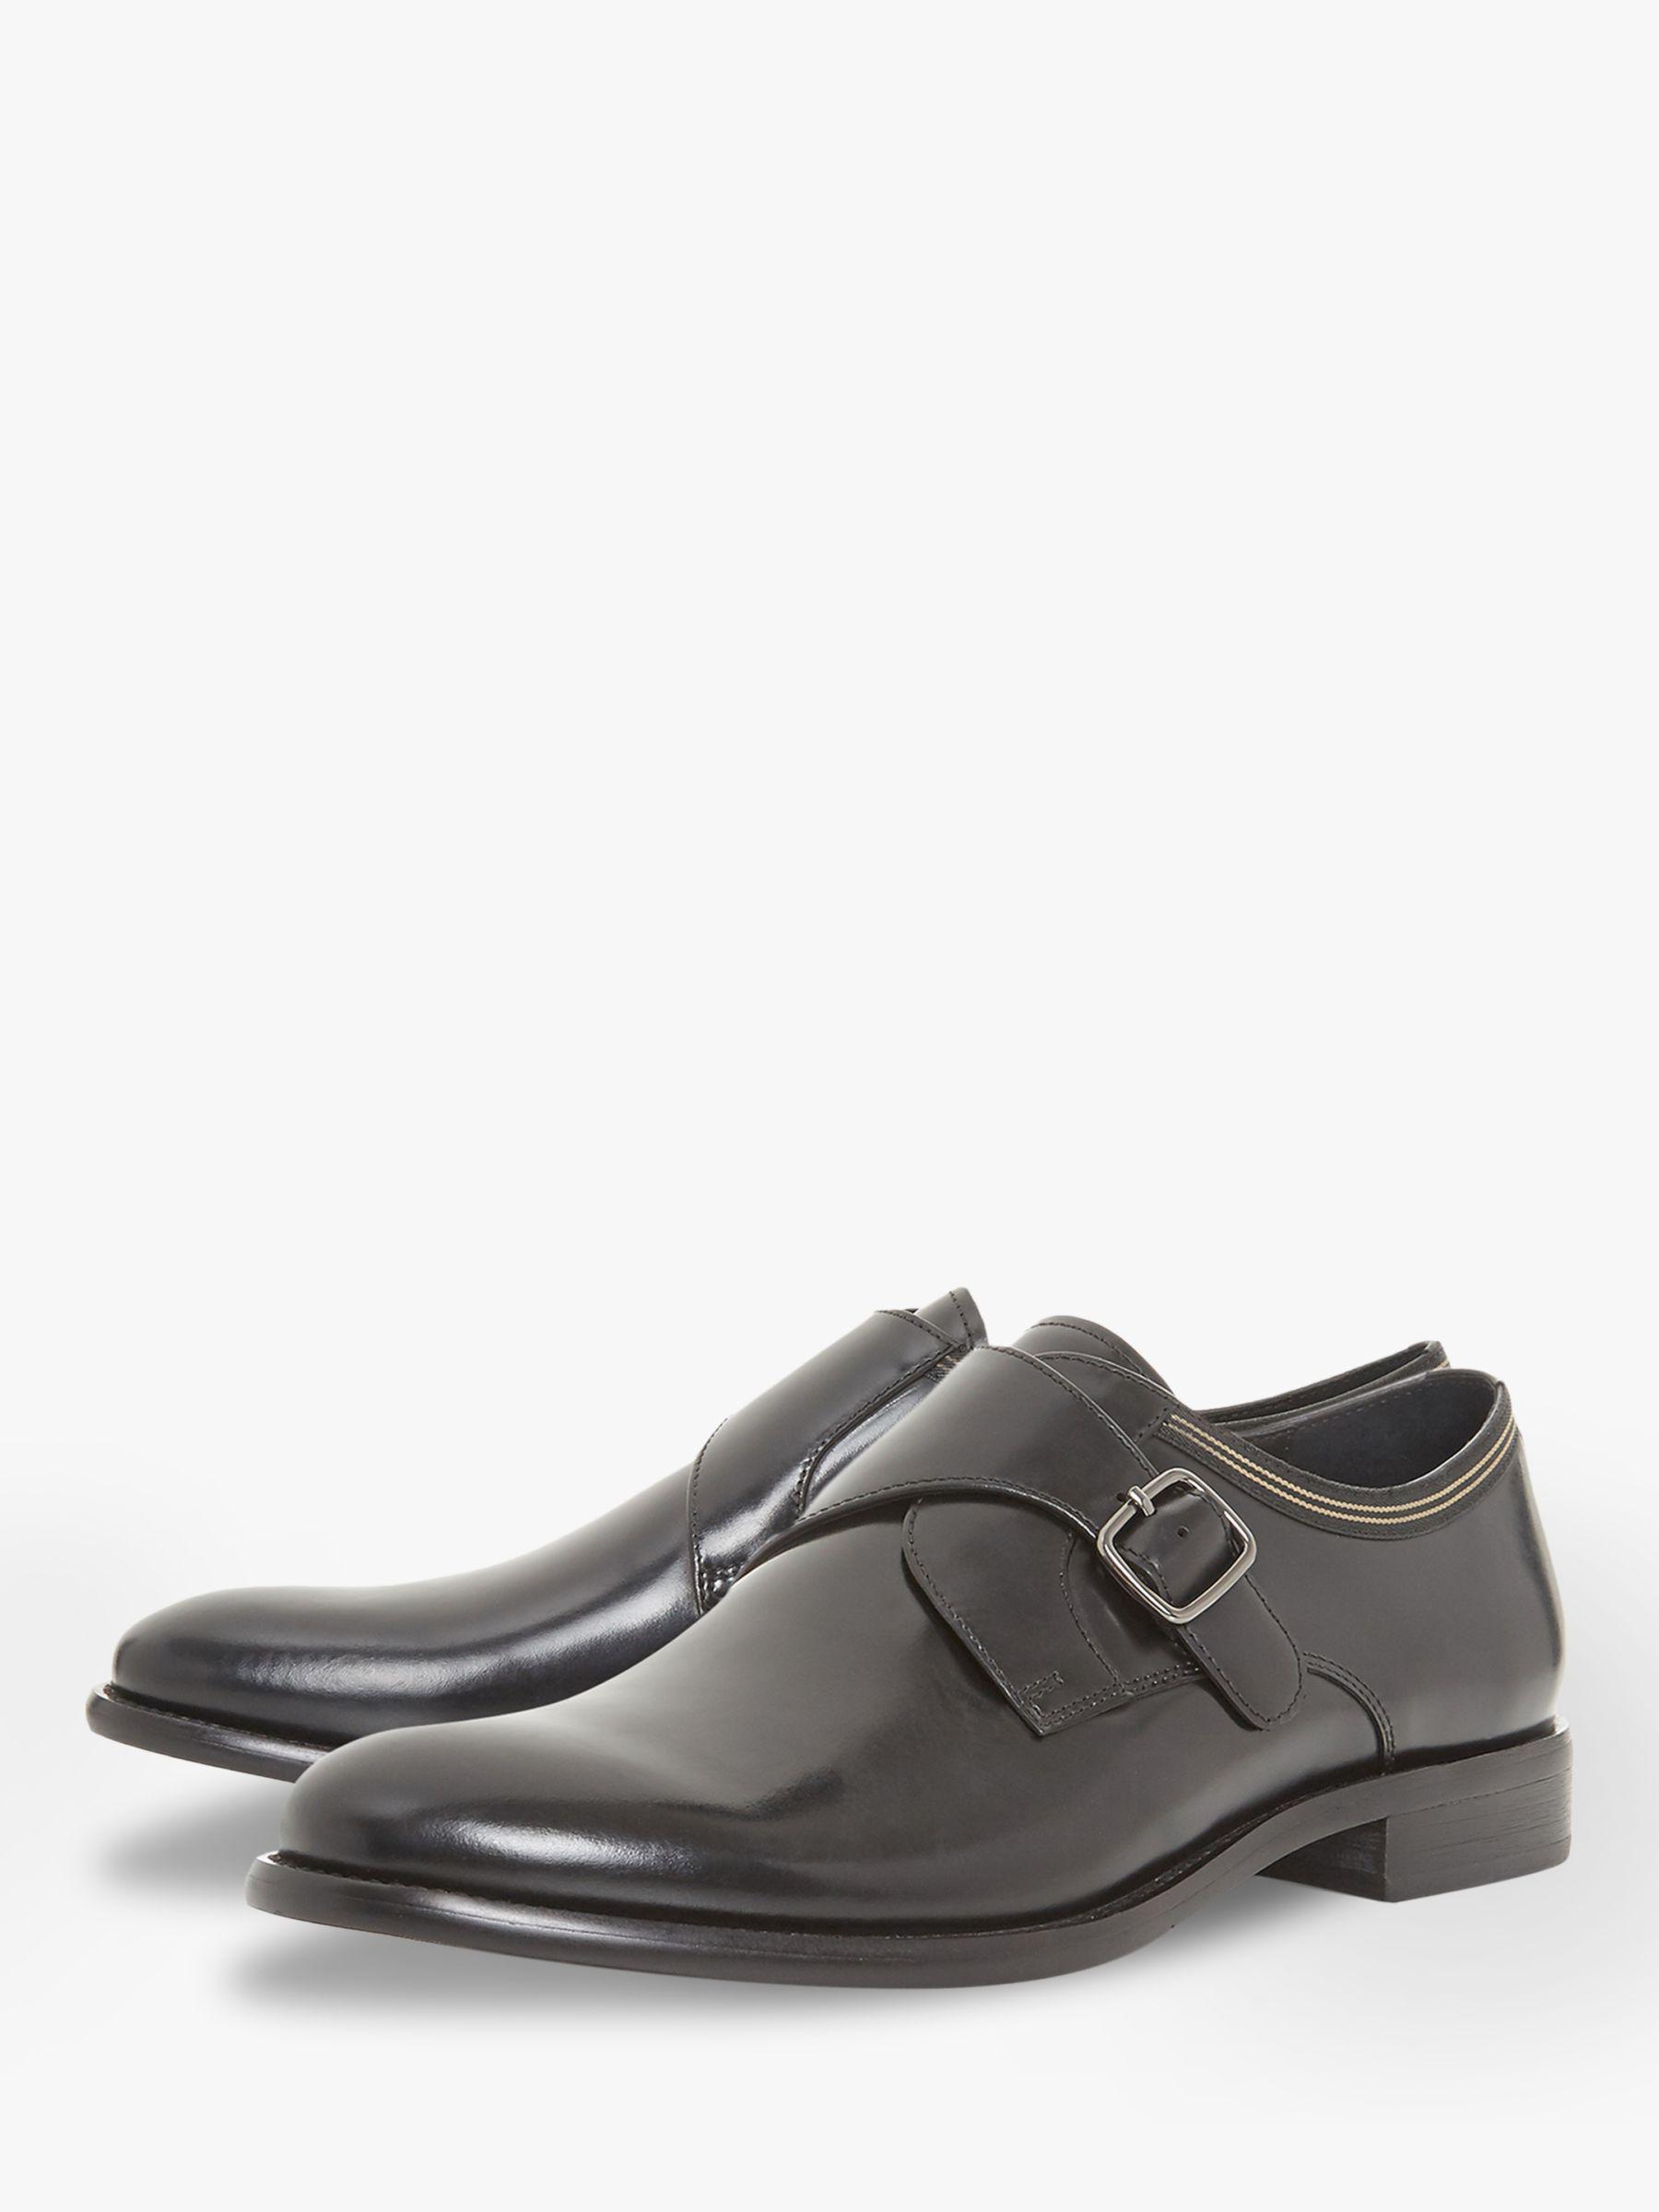 Bertie Leather Pilcrow Monk Strap Shoes in Black for Men